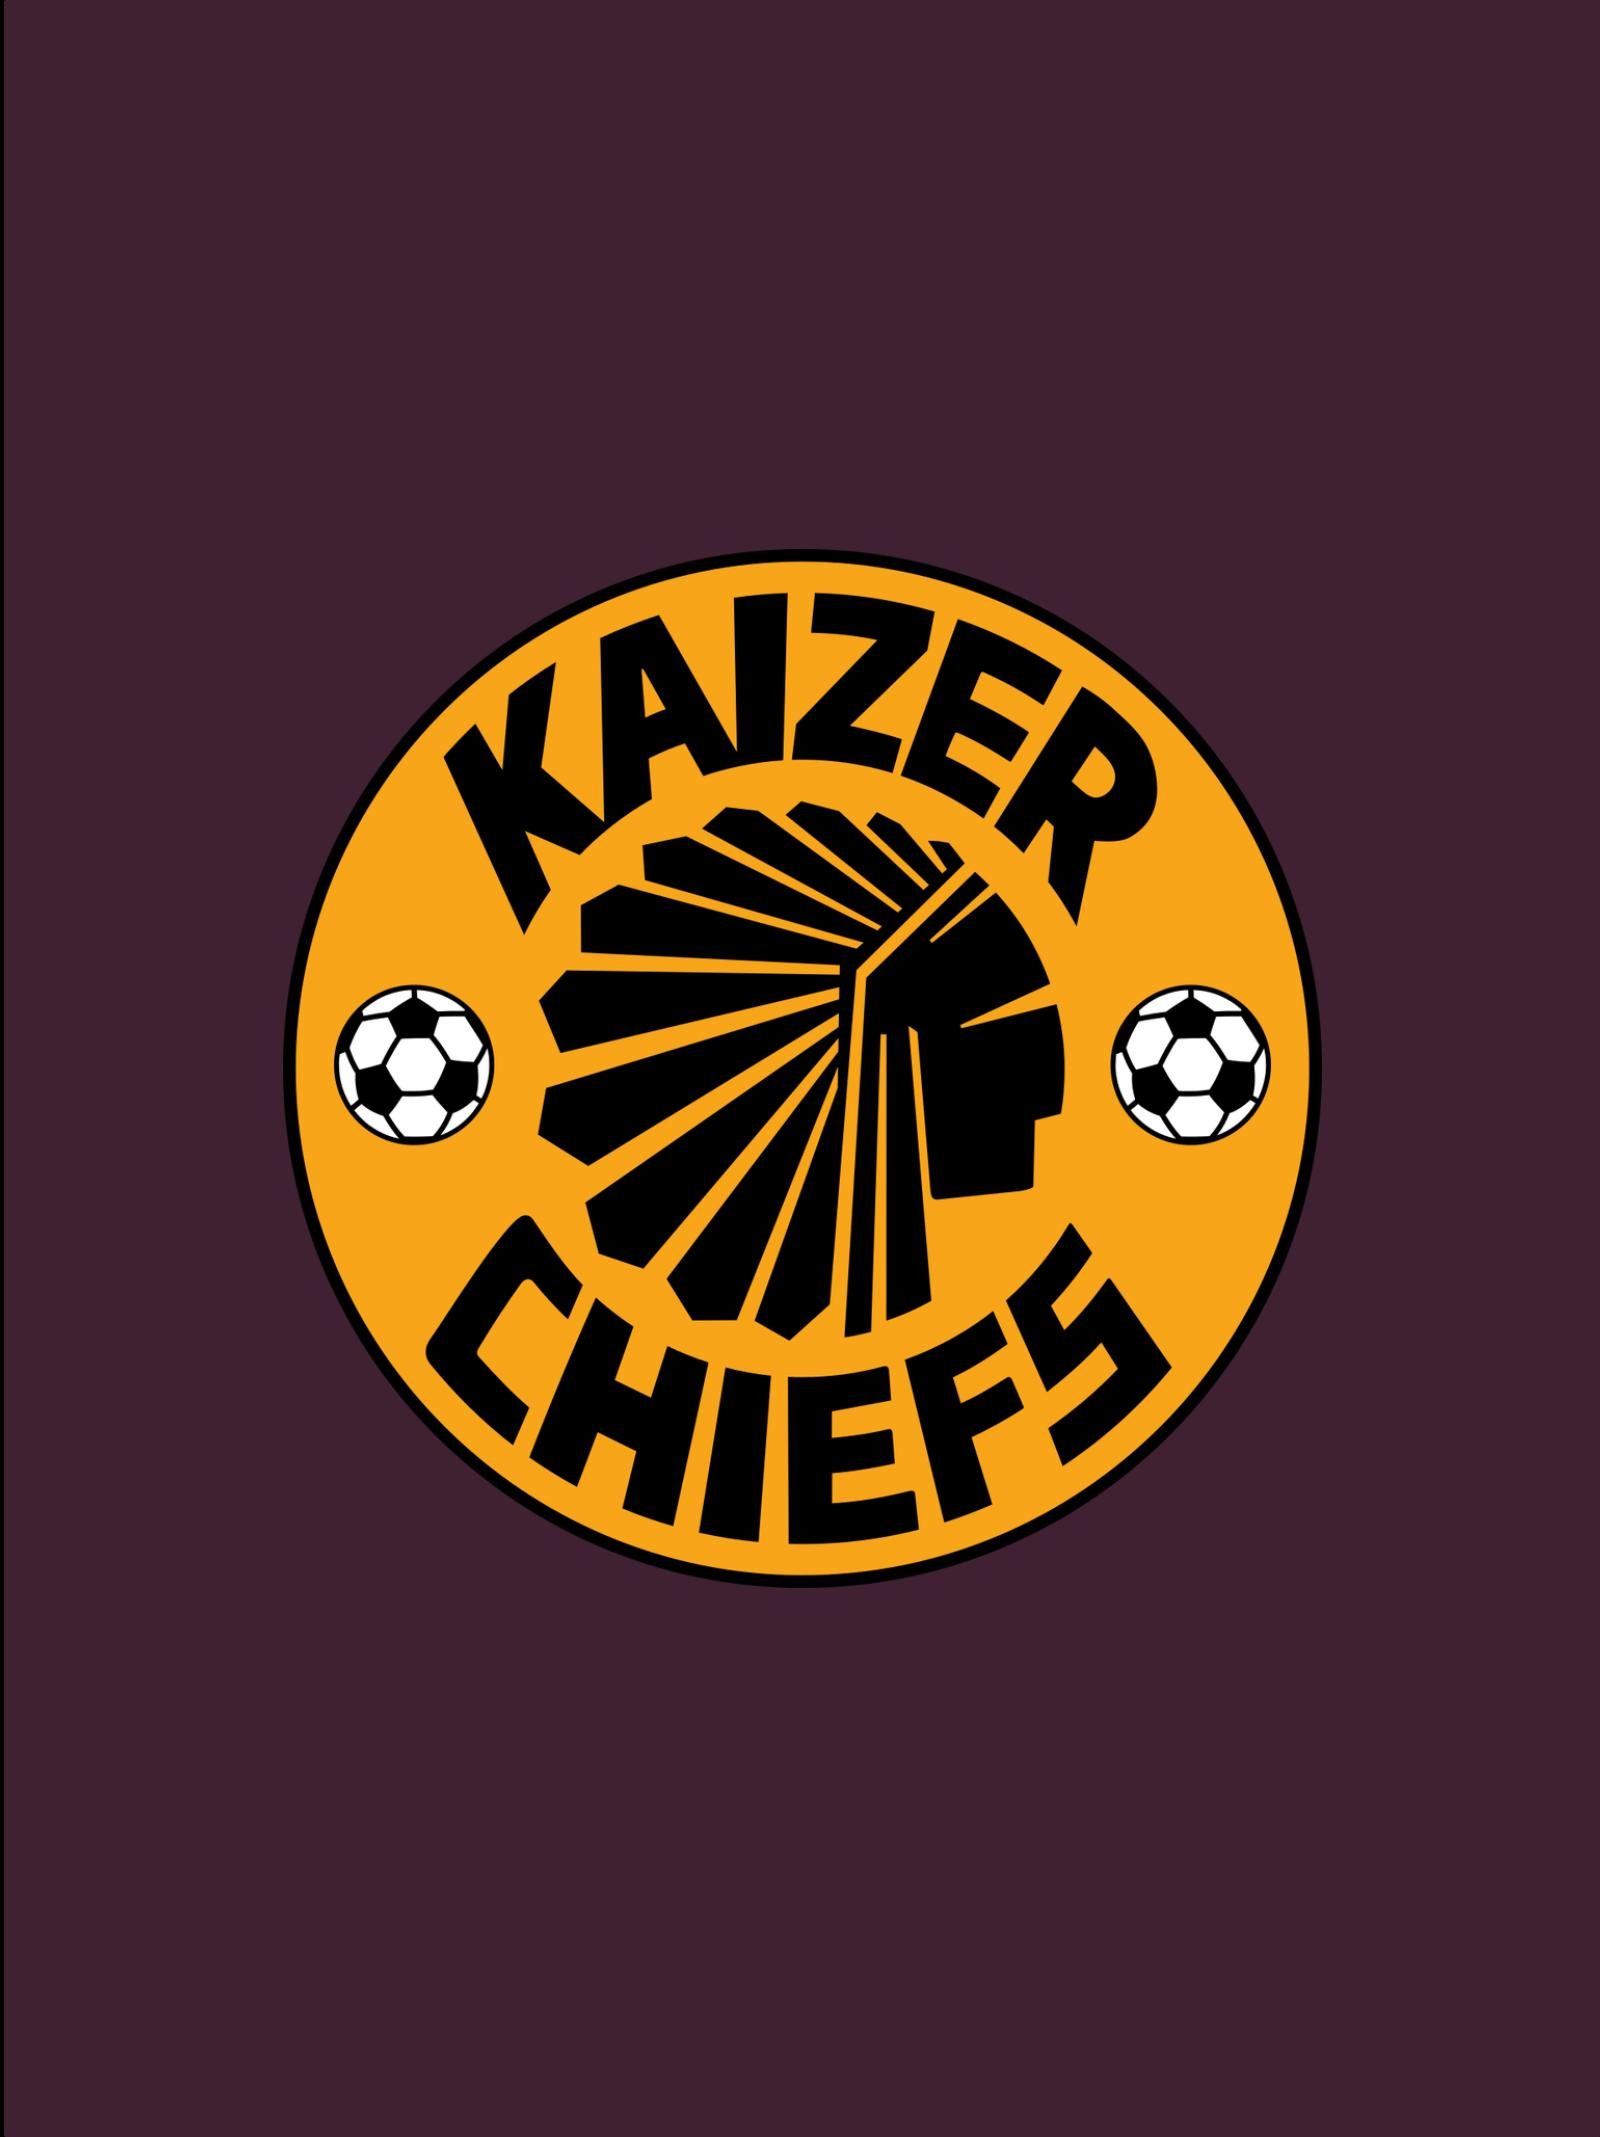 Kaizer Chiefs Smartphone Wallpapers Wallpaper Cave